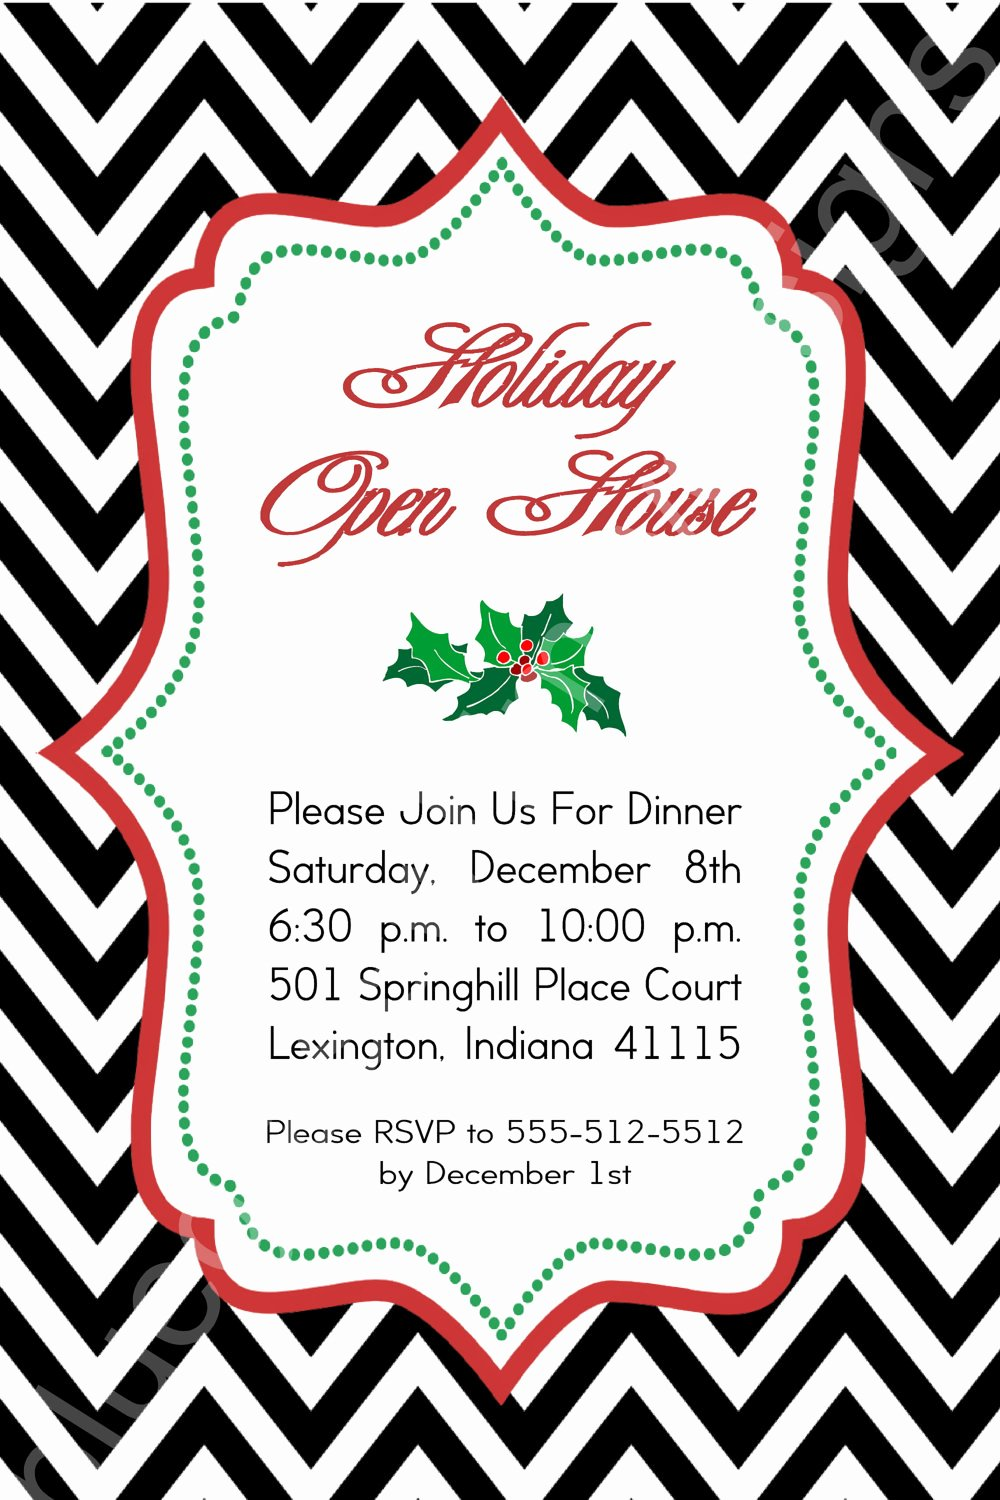 Holiday Open House Invitations Fresh Black Chevron Holly Holiday Open House Invitation